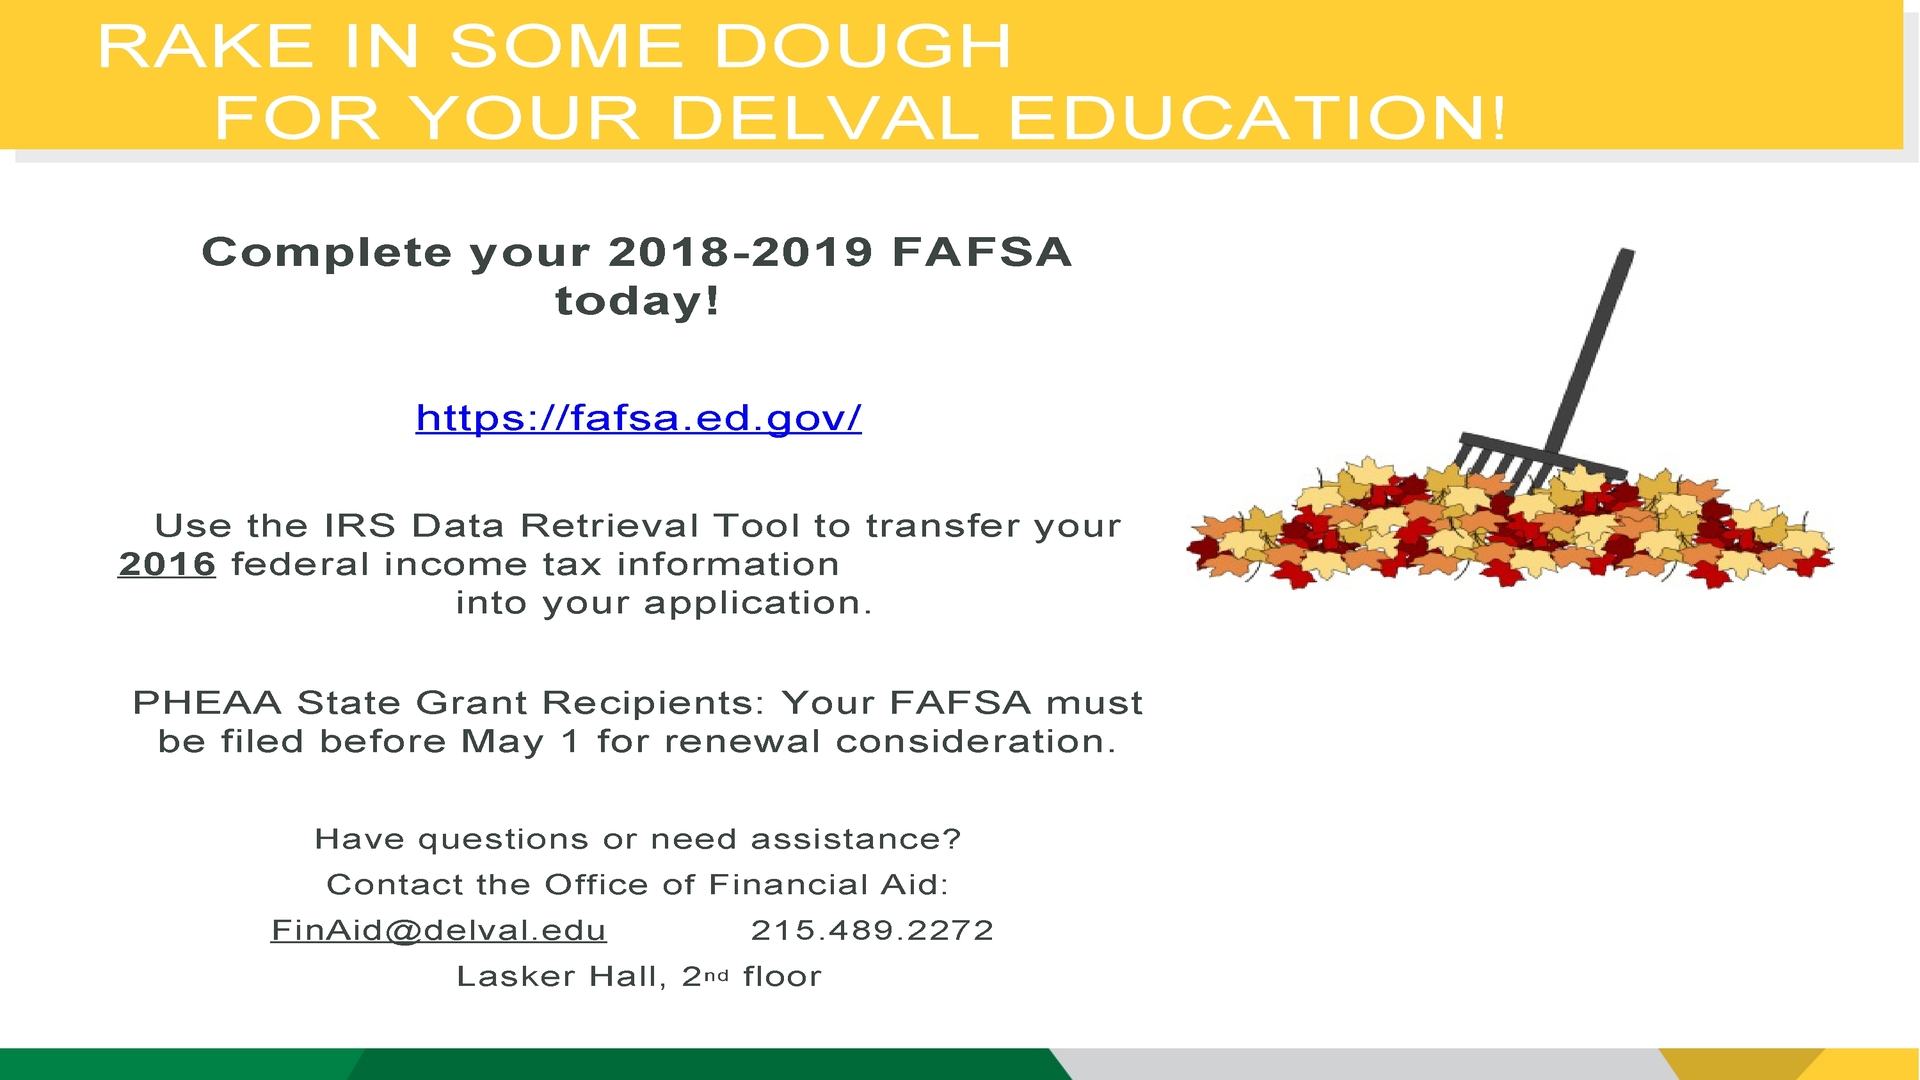 Information regarding November FAFSA Filing Reminder is as follows Start date is November 07 2017 and End Date is November 30 2017 and File is Browse and Name is Charis Lasky and Email is Charis.Lasky@delval.edu and Affiliation is Department and File Name is Fall-FAFSA-Filing-Reminder-Campus-Monitor-Slide-110117_comp.jpg and Panel is Main and Name of Ad/Event is November FAFSA Filing Reminder and Group Name is Office of Financial Aid and